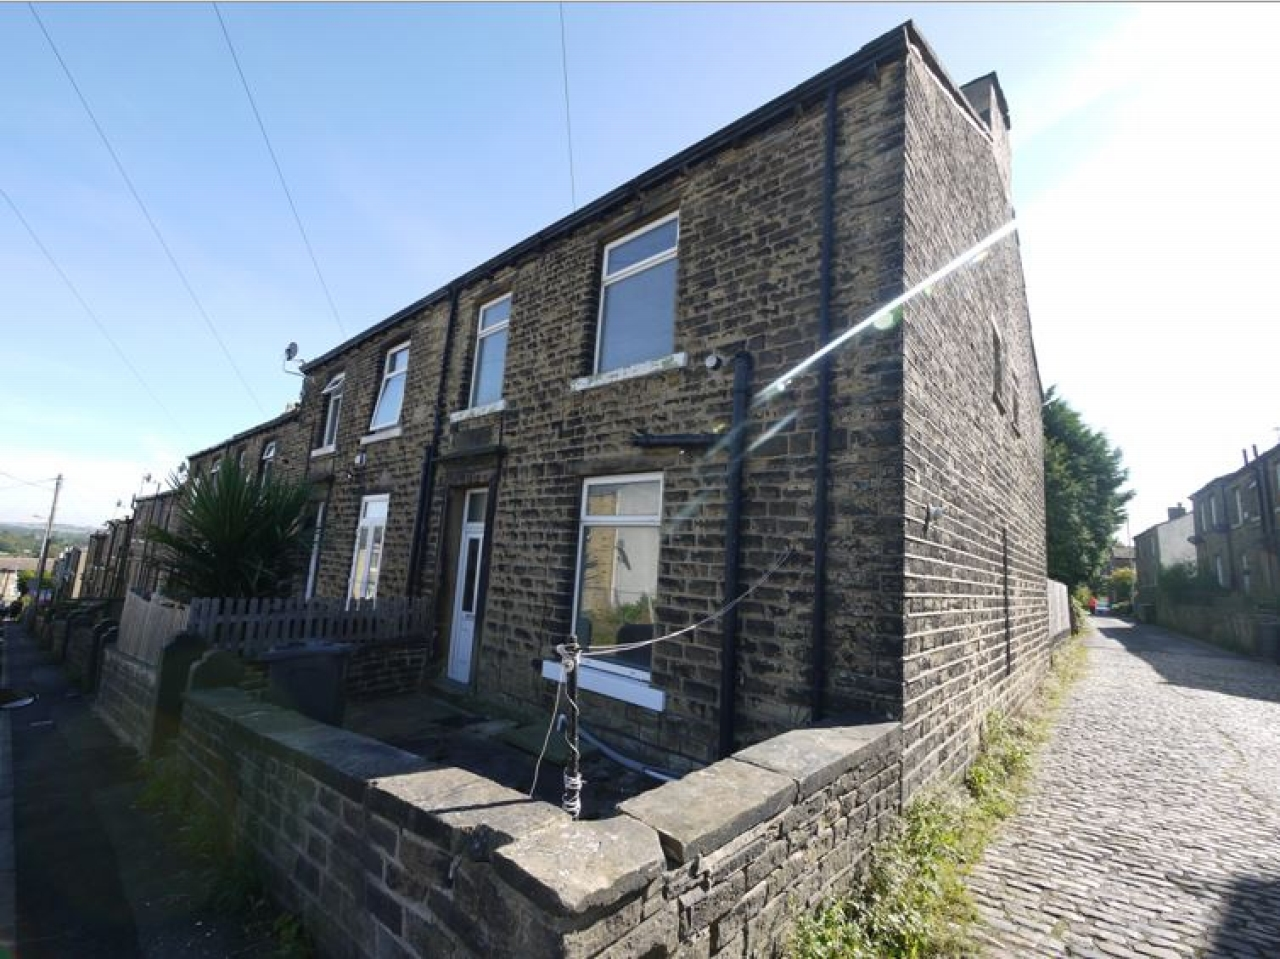 2 bedroom barn conversion house Let in Hudderfield - Photograph 1.